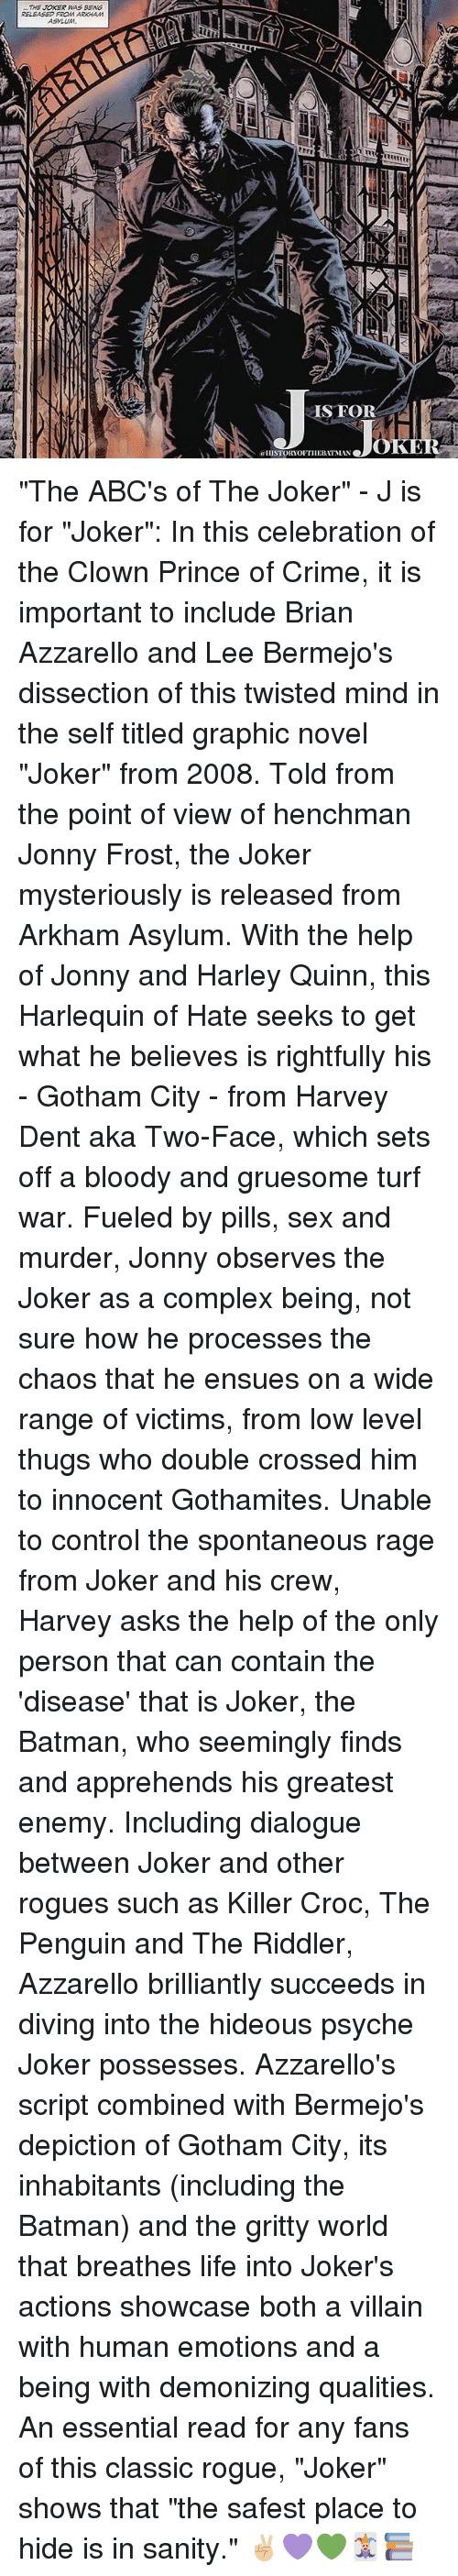 """Two-Face: THE JOKER WAS BENG  RELEASED FROM ARKAHAM  SFOR  OK  ISTORTOFTIIEBIT MAN """"The ABC's of The Joker"""" - J is for """"Joker"""": In this celebration of the Clown Prince of Crime, it is important to include Brian Azzarello and Lee Bermejo's dissection of this twisted mind in the self titled graphic novel """"Joker"""" from 2008. Told from the point of view of henchman Jonny Frost, the Joker mysteriously is released from Arkham Asylum. With the help of Jonny and Harley Quinn, this Harlequin of Hate seeks to get what he believes is rightfully his - Gotham City - from Harvey Dent aka Two-Face, which sets off a bloody and gruesome turf war. Fueled by pills, sex and murder, Jonny observes the Joker as a complex being, not sure how he processes the chaos that he ensues on a wide range of victims, from low level thugs who double crossed him to innocent Gothamites. Unable to control the spontaneous rage from Joker and his crew, Harvey asks the help of the only person that can contain the 'disease' that is Joker, the Batman, who seemingly finds and apprehends his greatest enemy. Including dialogue between Joker and other rogues such as Killer Croc, The Penguin and The Riddler, Azzarello brilliantly succeeds in diving into the hideous psyche Joker possesses. Azzarello's script combined with Bermejo's depiction of Gotham City, its inhabitants (including the Batman) and the gritty world that breathes life into Joker's actions showcase both a villain with human emotions and a being with demonizing qualities. An essential read for any fans of this classic rogue, """"Joker"""" shows that """"the safest place to hide is in sanity."""" ✌🏼💜💚🃏📚"""